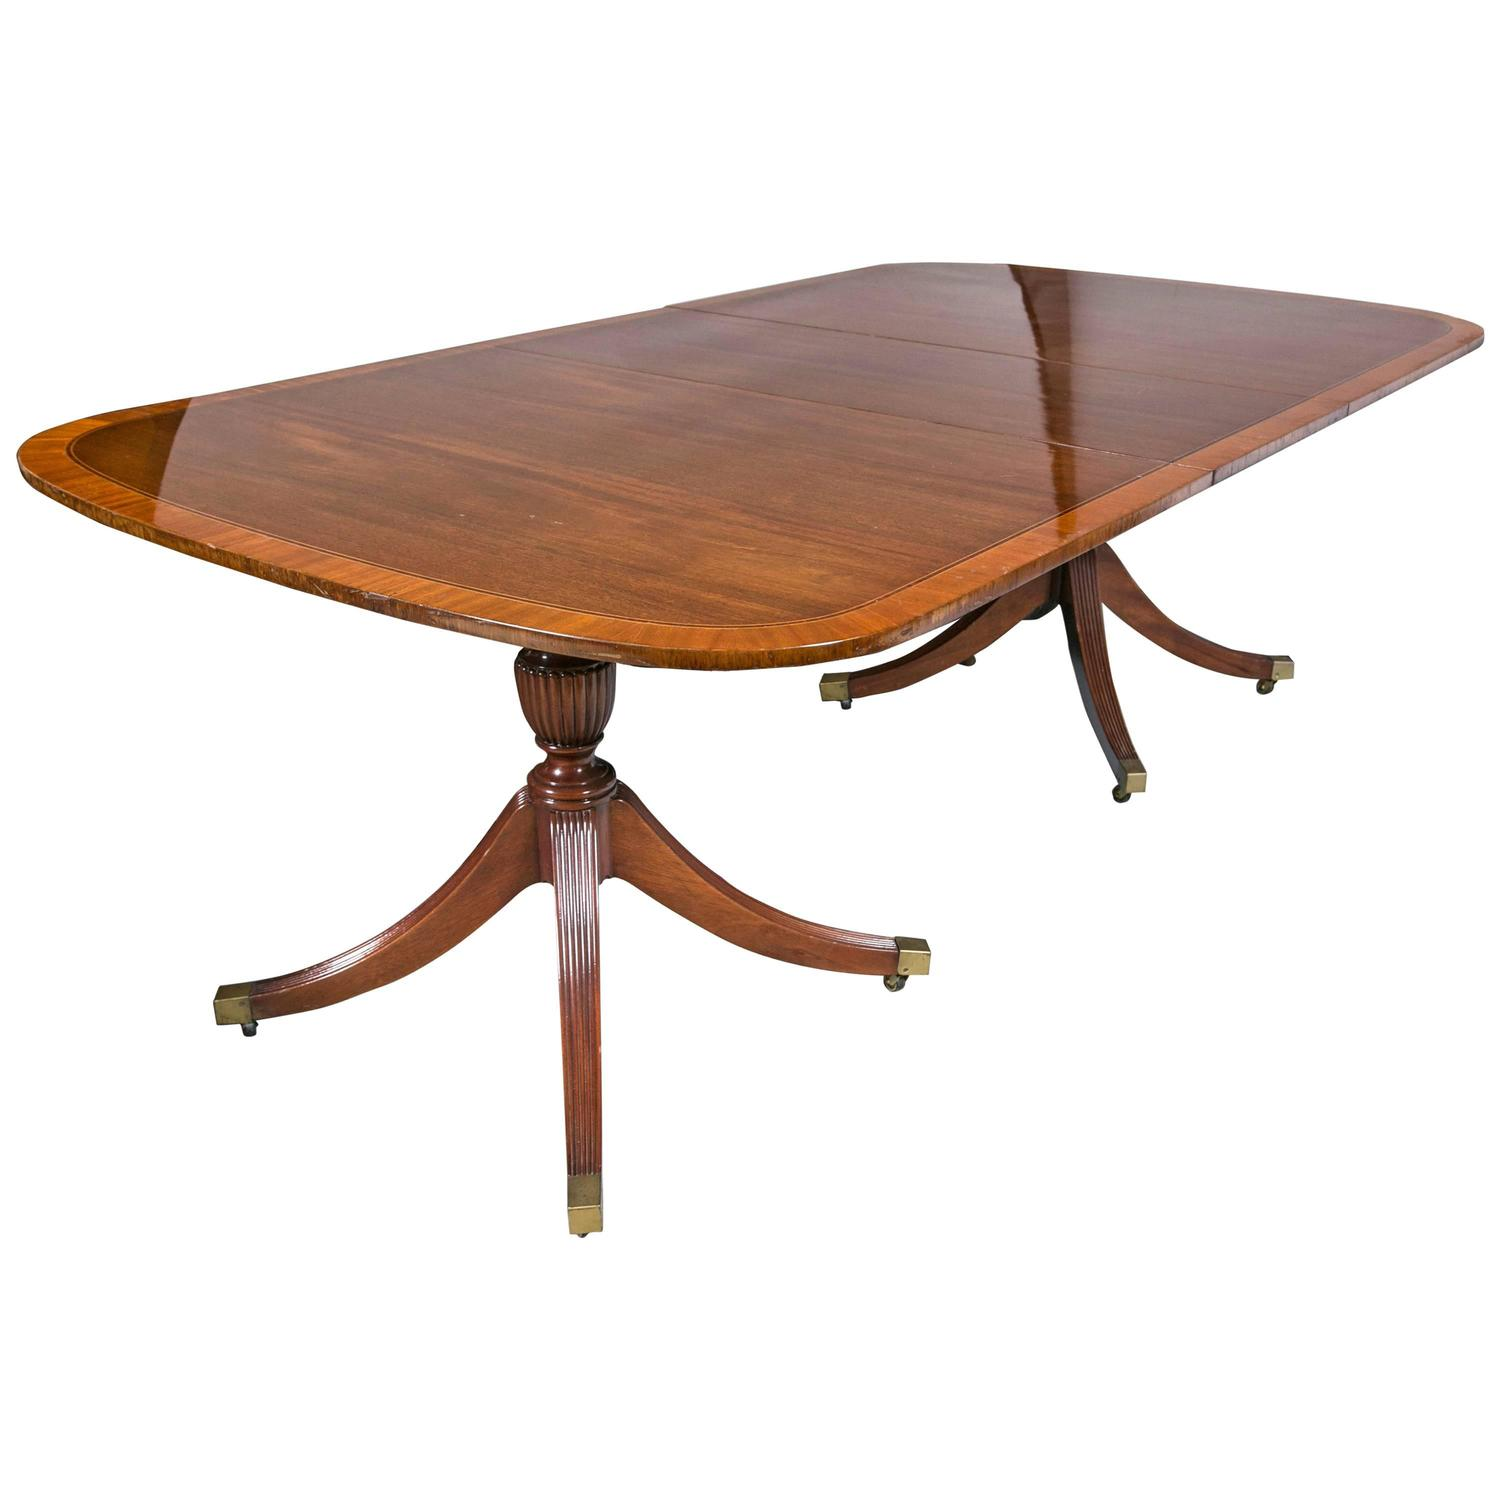 Georgian Style Mahogany Banded Dining Table By Baker With Two